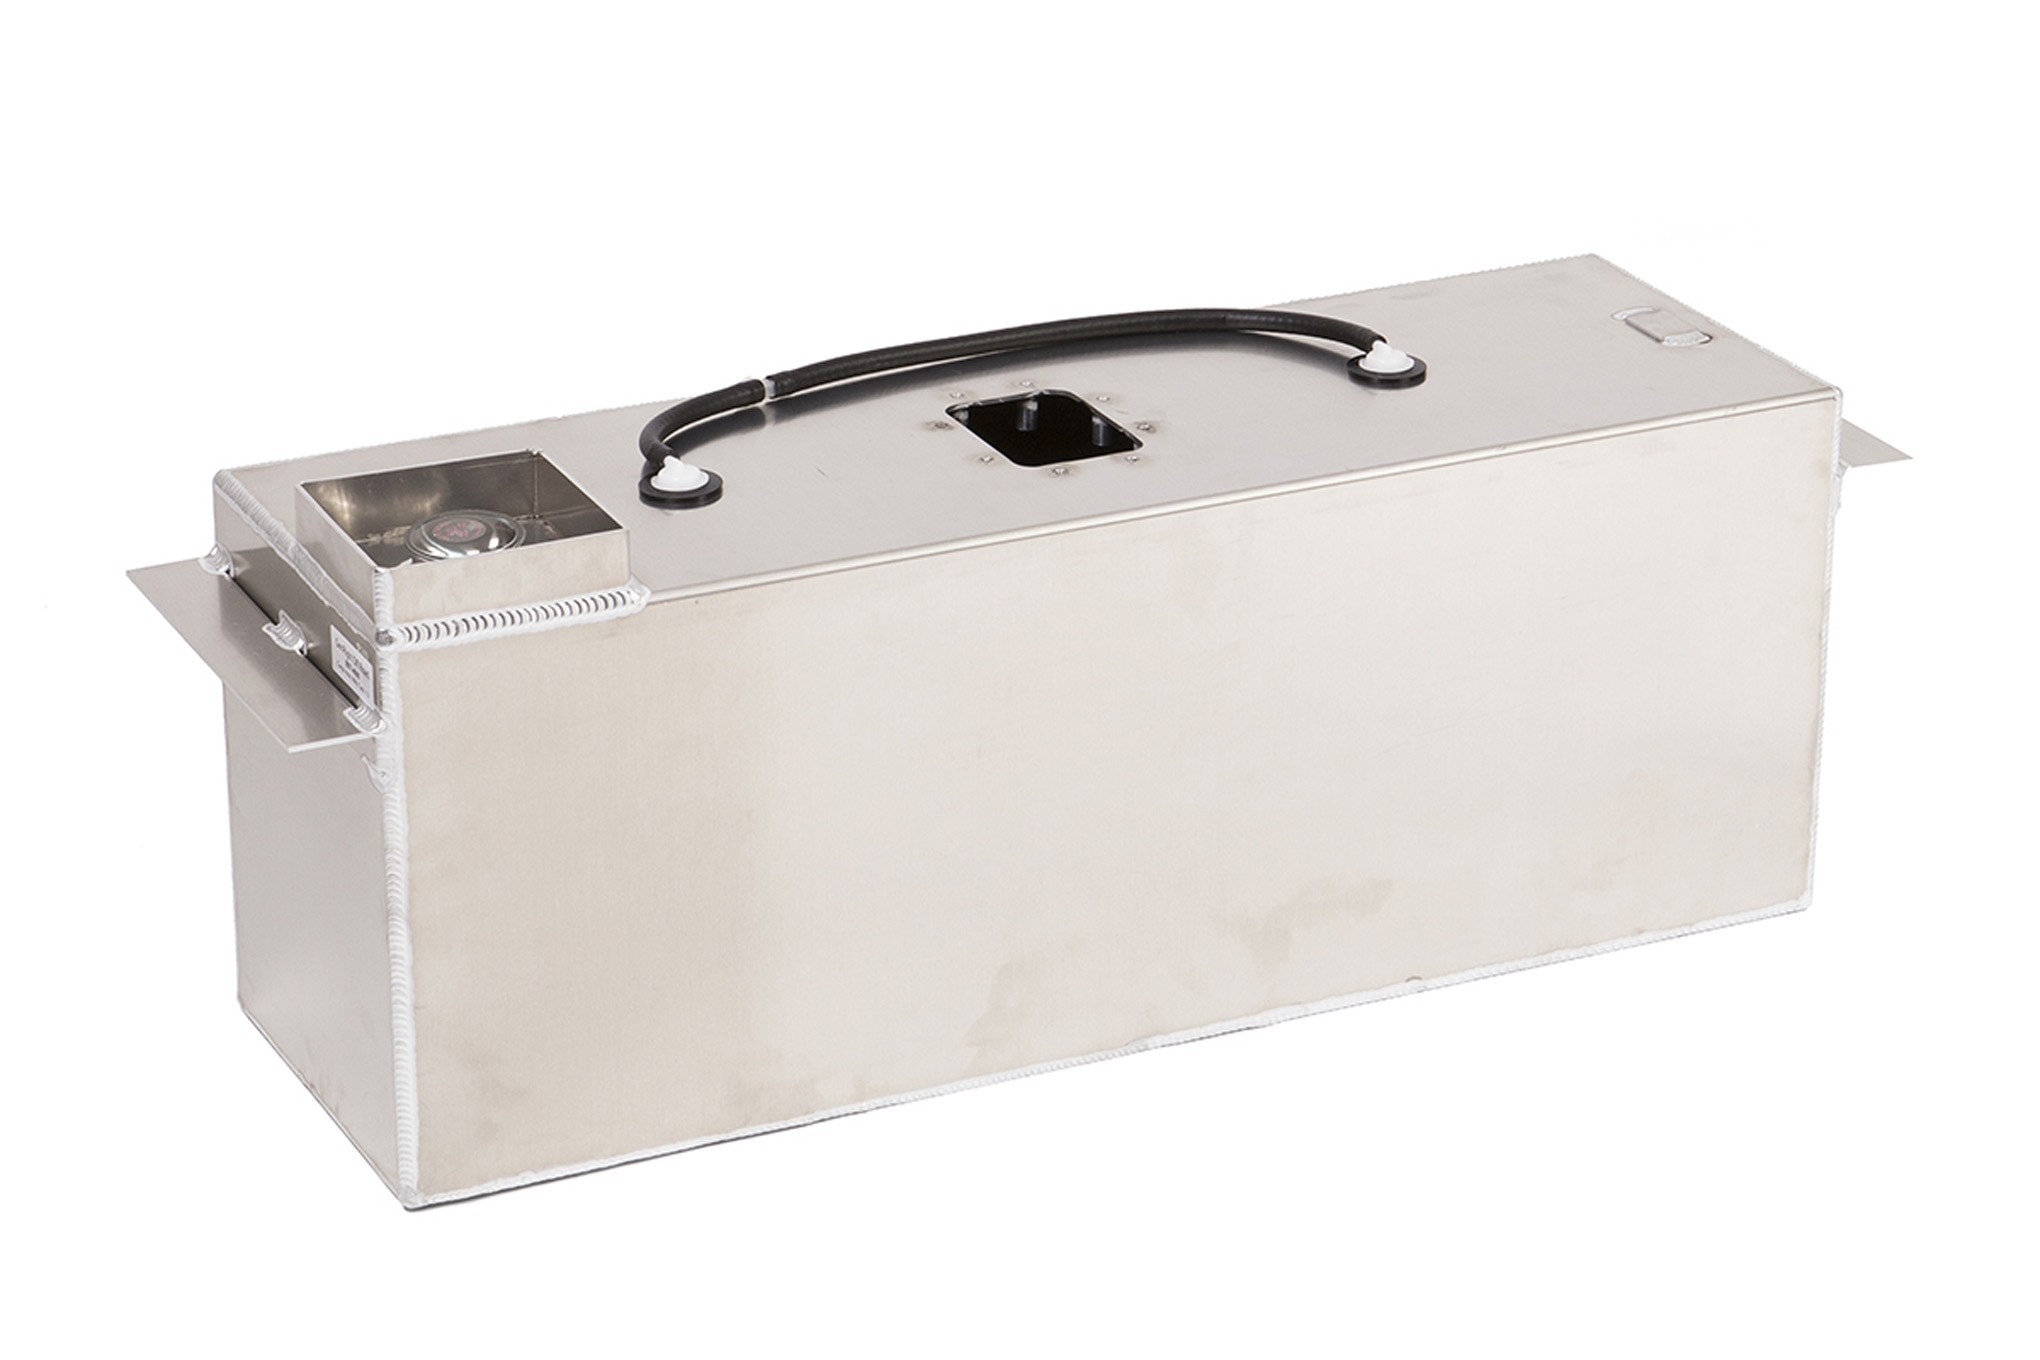 genright jeep yj wrangler fuel tank cell